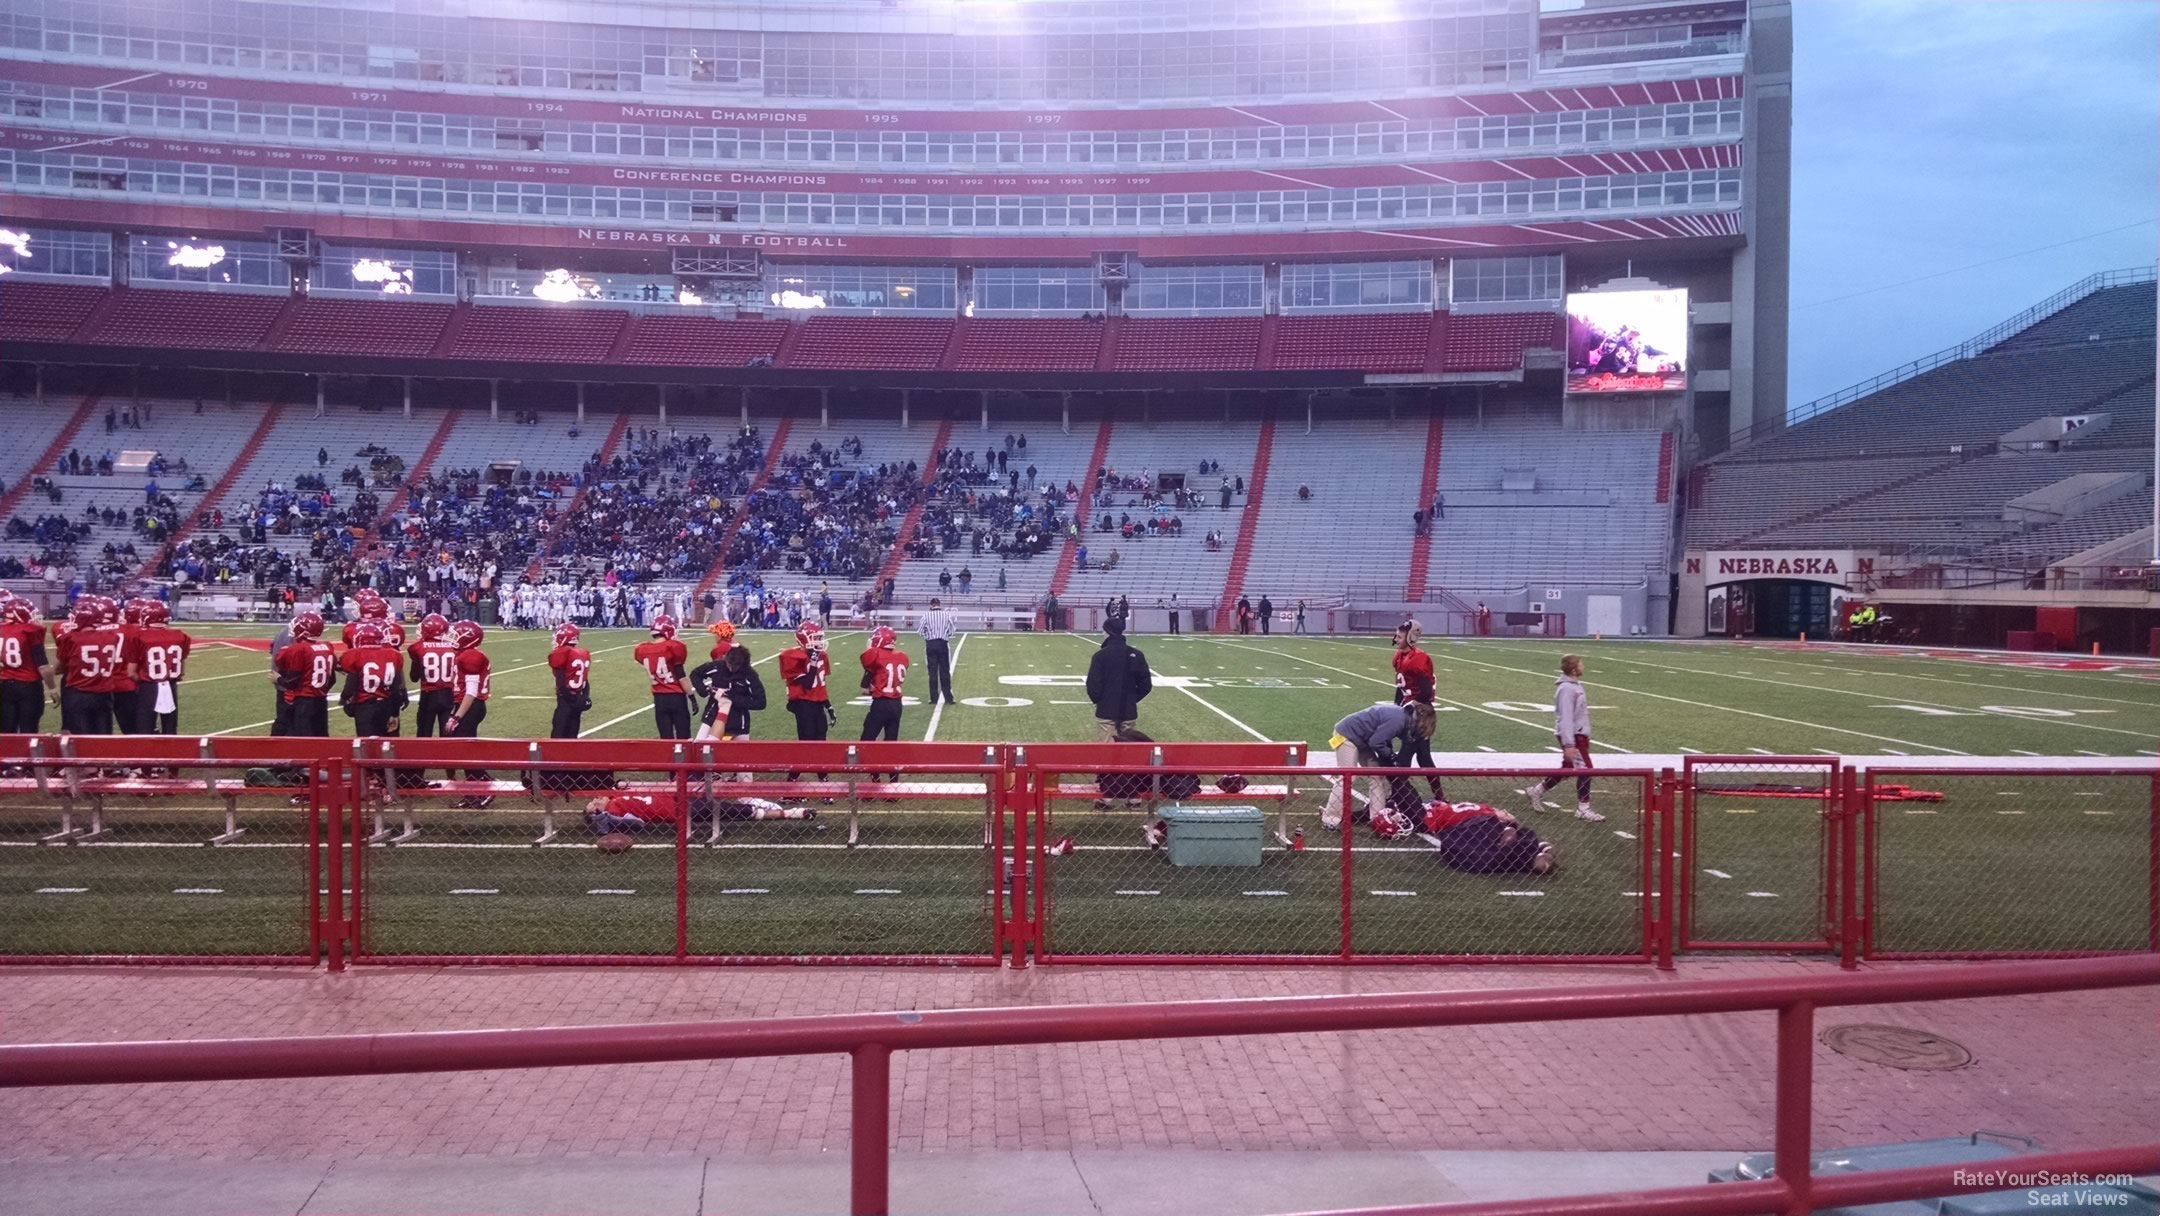 Memorial Stadium Nebraska Section 5 Row C on 11 25 2014k